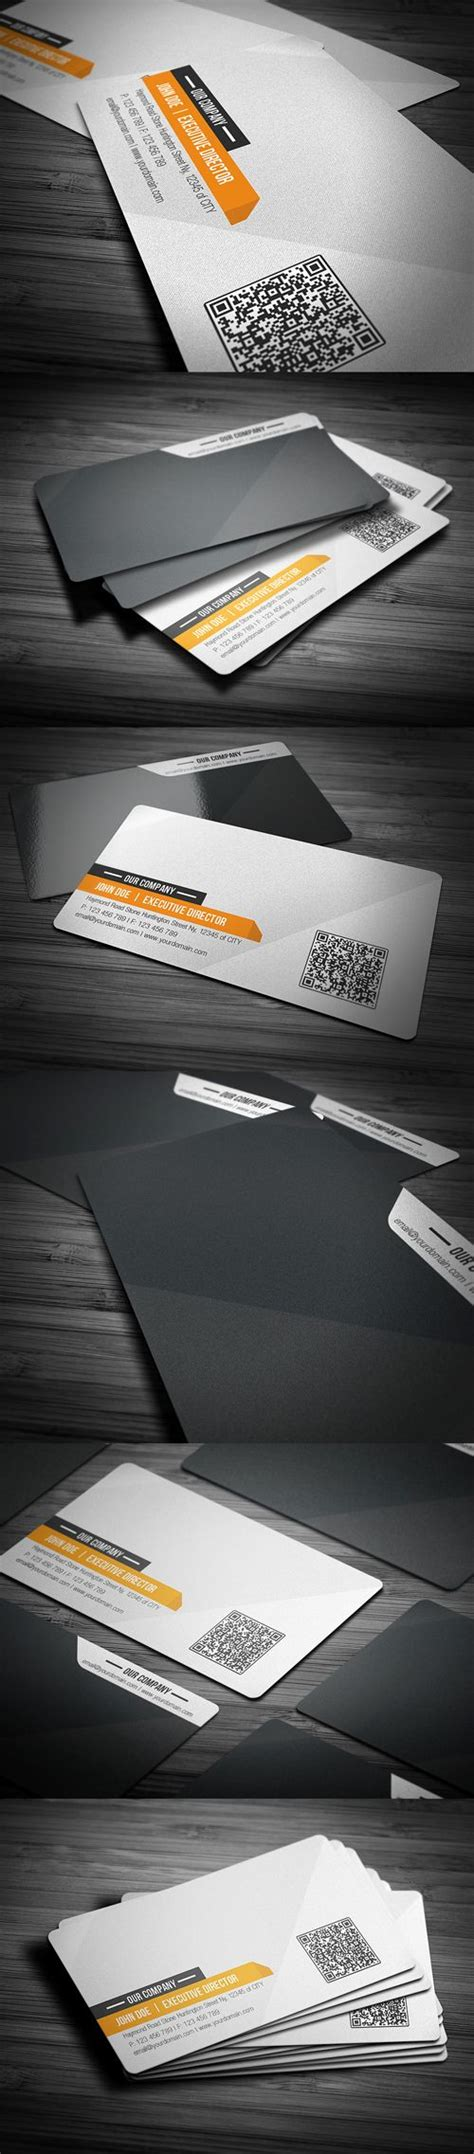 premium corporate business cards  design  images